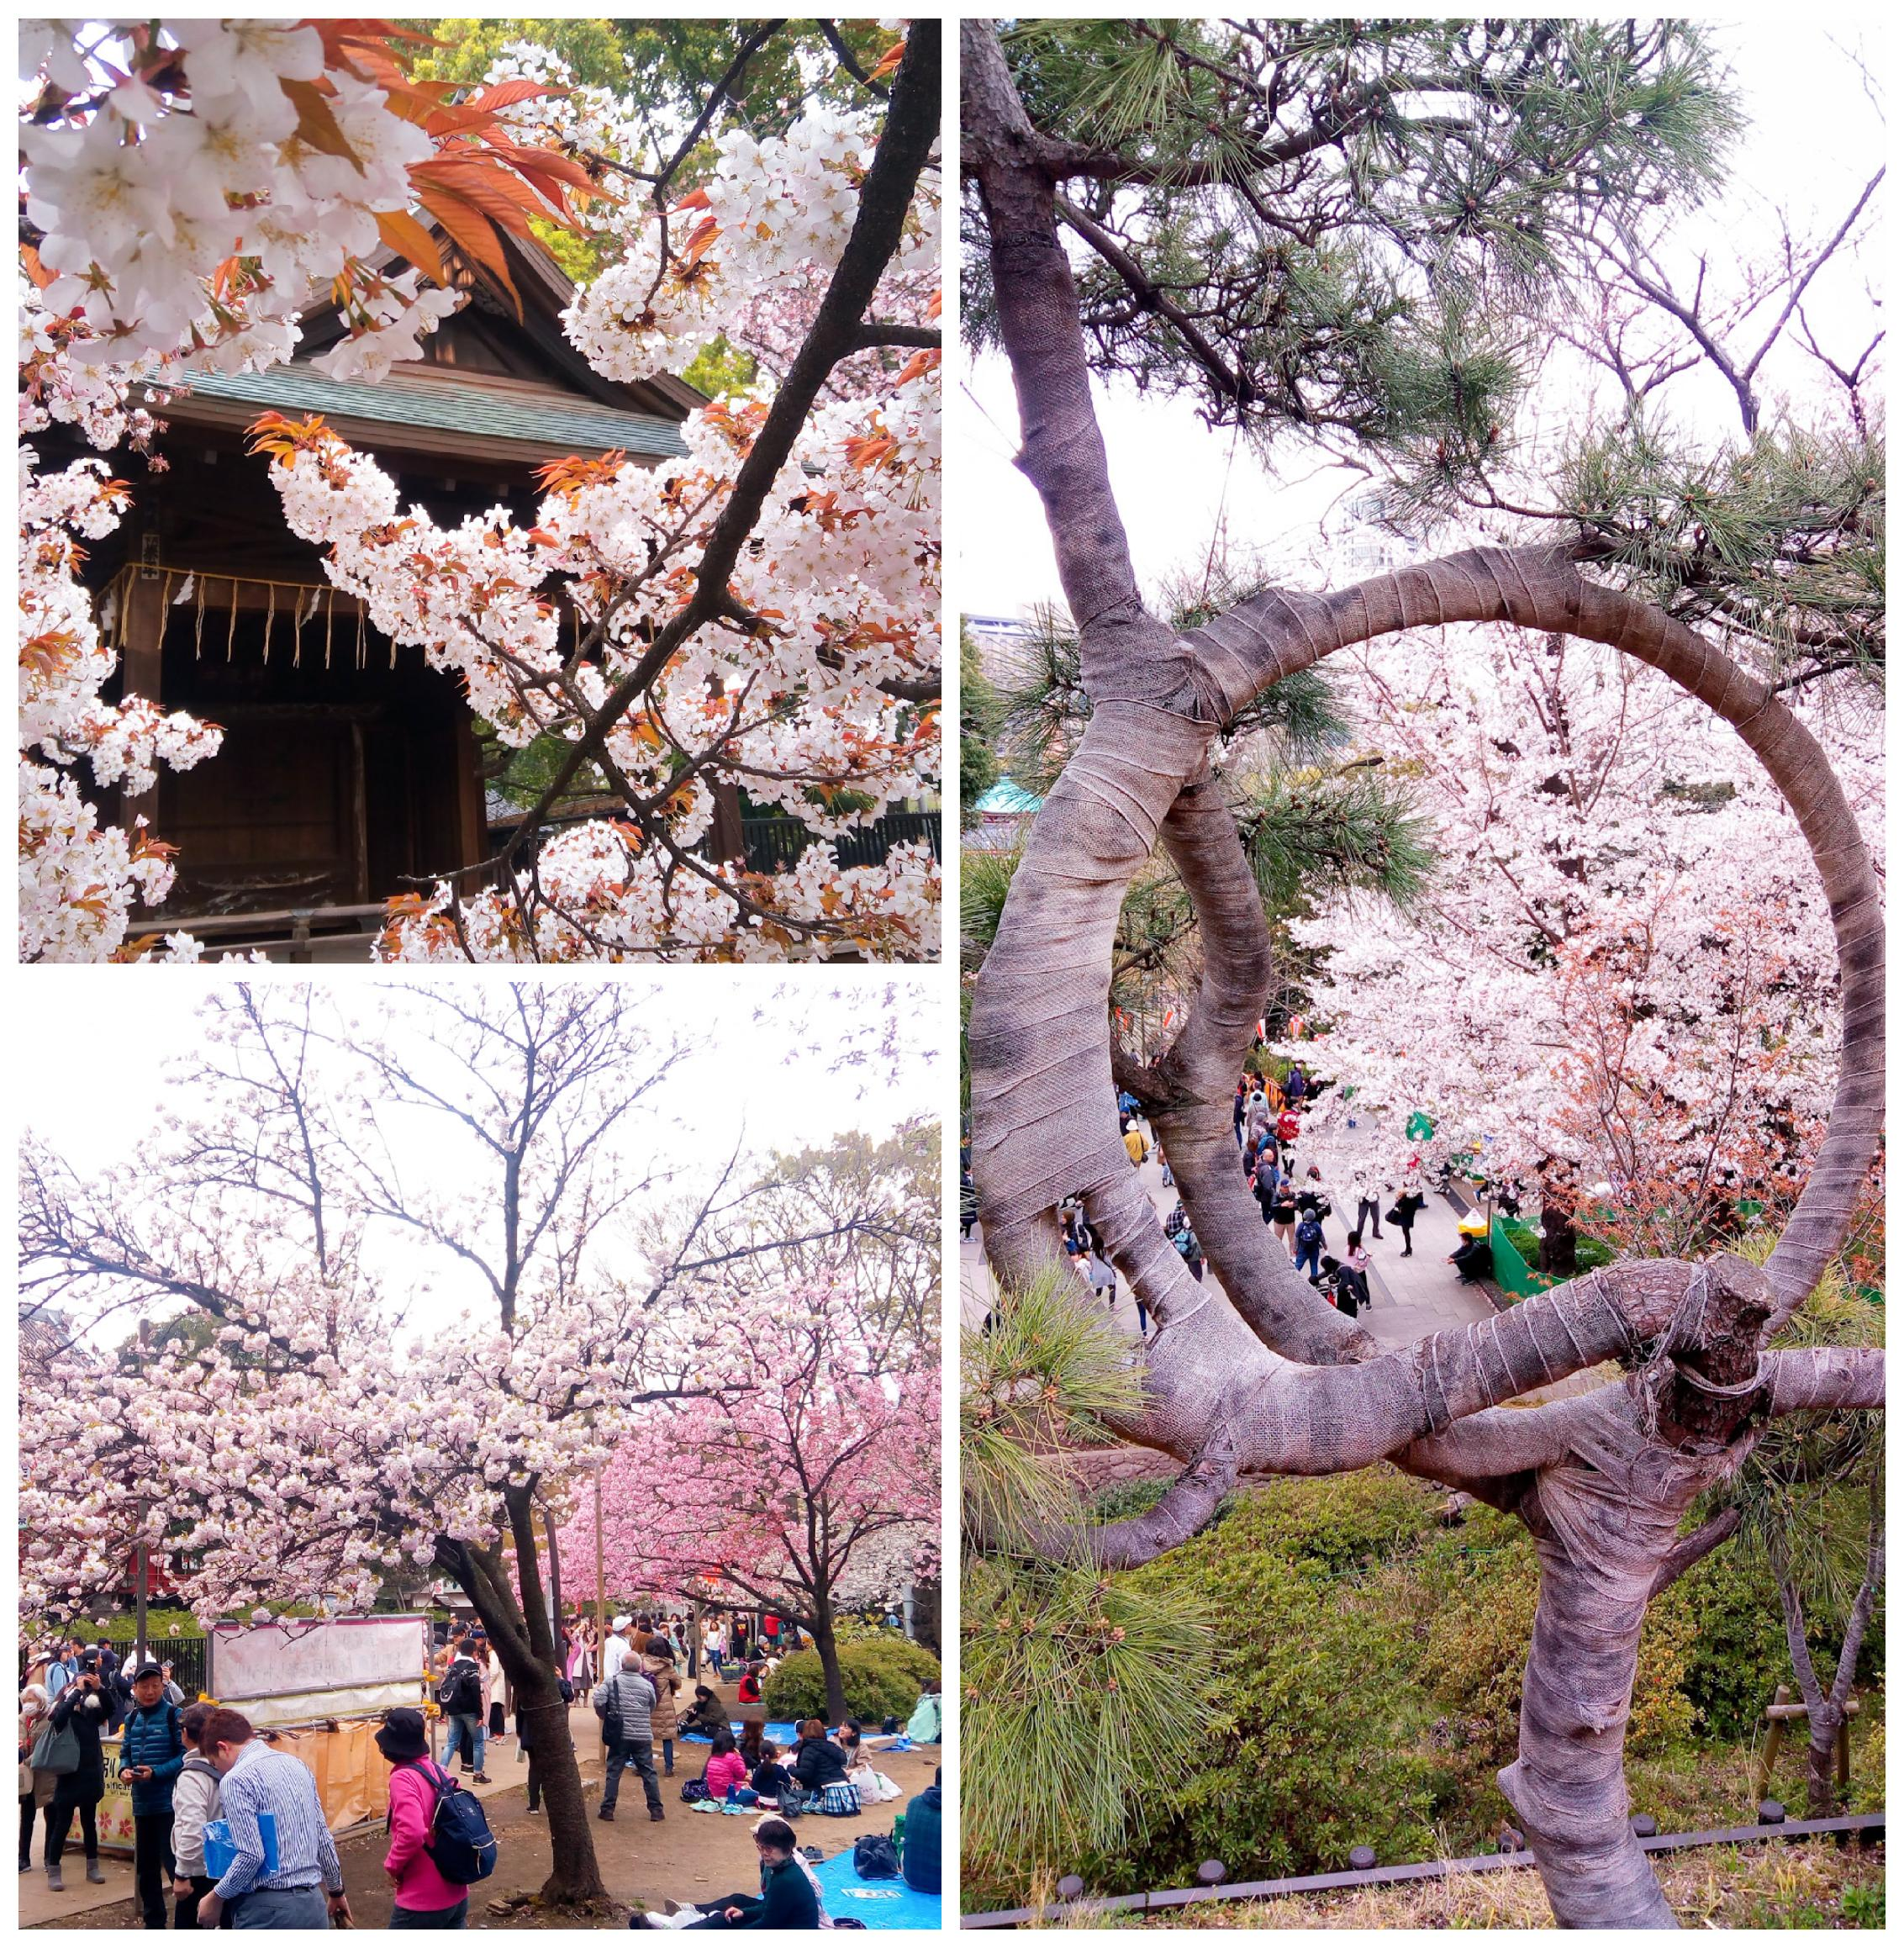 Urban Photos - Taito, Tokyo, Japan. 'Ueno Park.' Home to Ueno Zoo, the Tokyo National Museum, the National Museum of Western art, and the Ueno Tosh-gu Shrine, this Park is renowned for its cherry blossom, and is a magnate for Hanami parties during Sakura season. Most of the park's original buildings were destroyed in 1868, when over 600 years of shogun rule finally came to an end, and the Emperor retook power, during Boshin war (Meiji Restoration). After the destruction, it was, in fact, a Dutch doctor 'Anthonius Bauduin' who lobbied for the site to become a park. sketchbookexplorer.com @davidasutton @sketchbookexplorer Facebook.com/davidanthonysutton #japan #tokyo #taito #uenopark #travel #travelblog #photography #cheeryblossom #cherryblossomseason #cherryblossomjapan